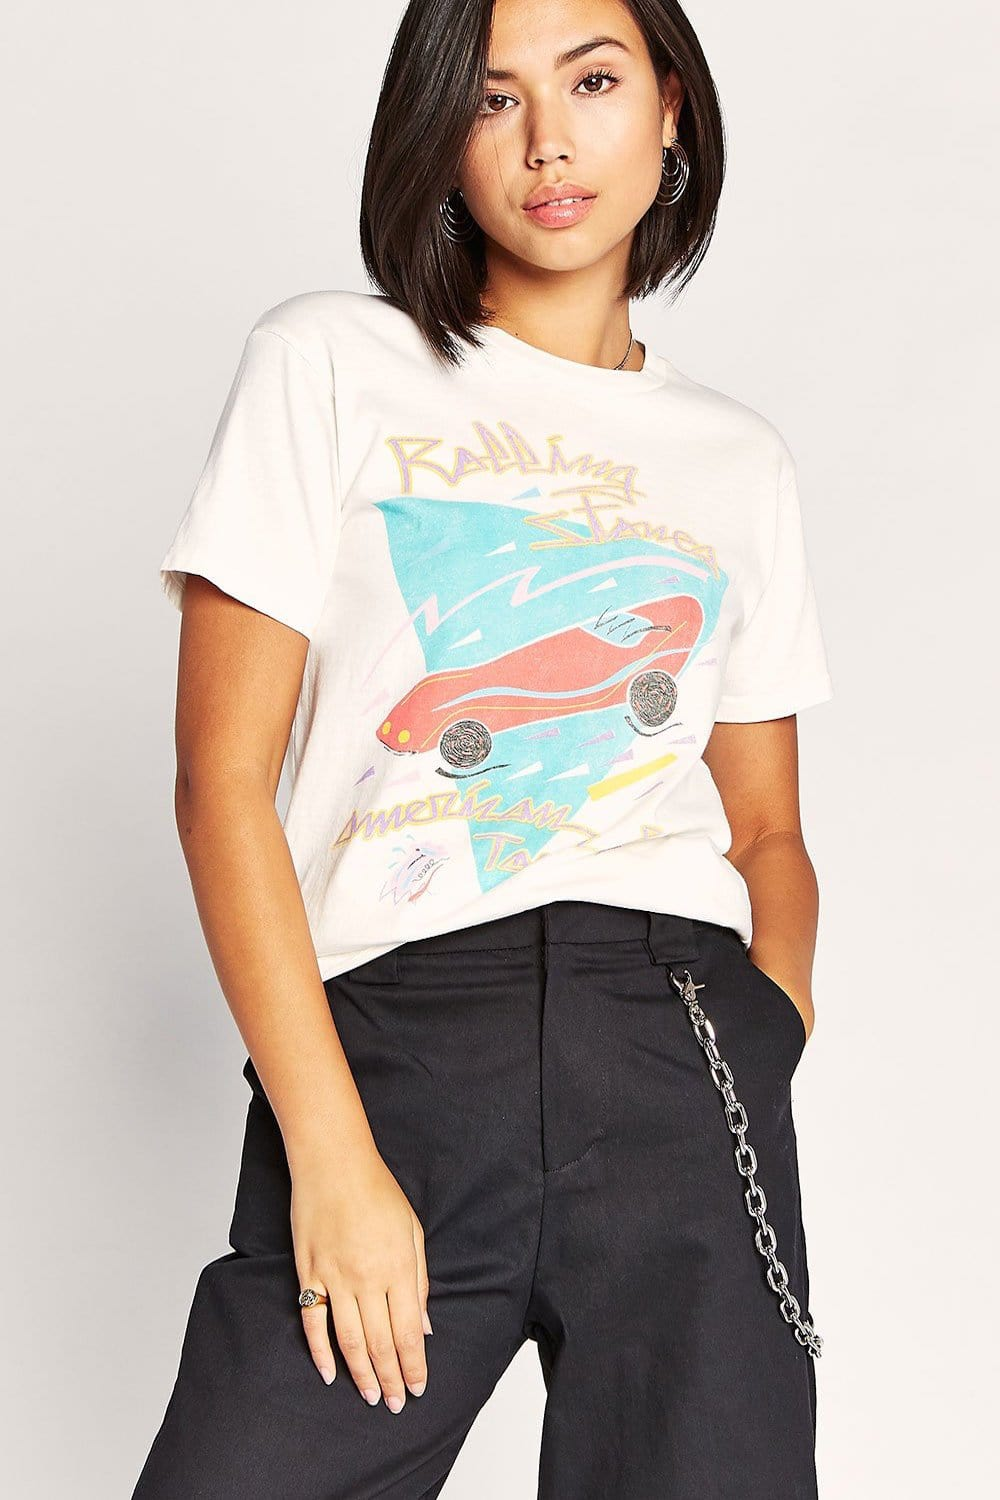 Daydreamer Rolling Stones '81 American Tour Tee | Wild Dove Boutique